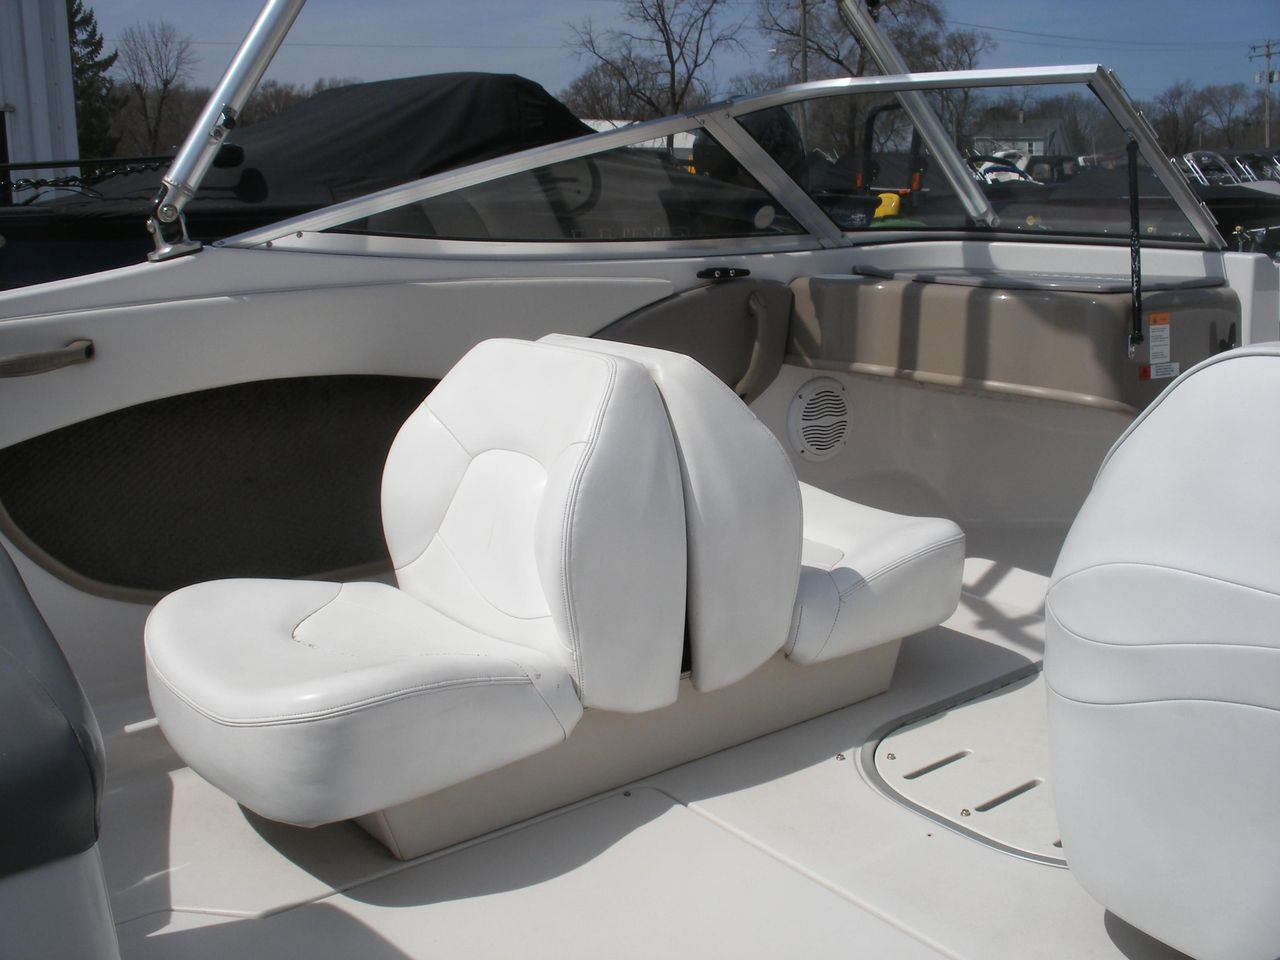 2002 Used Four Winns Freedom 170 Bowrider Boat For Sale